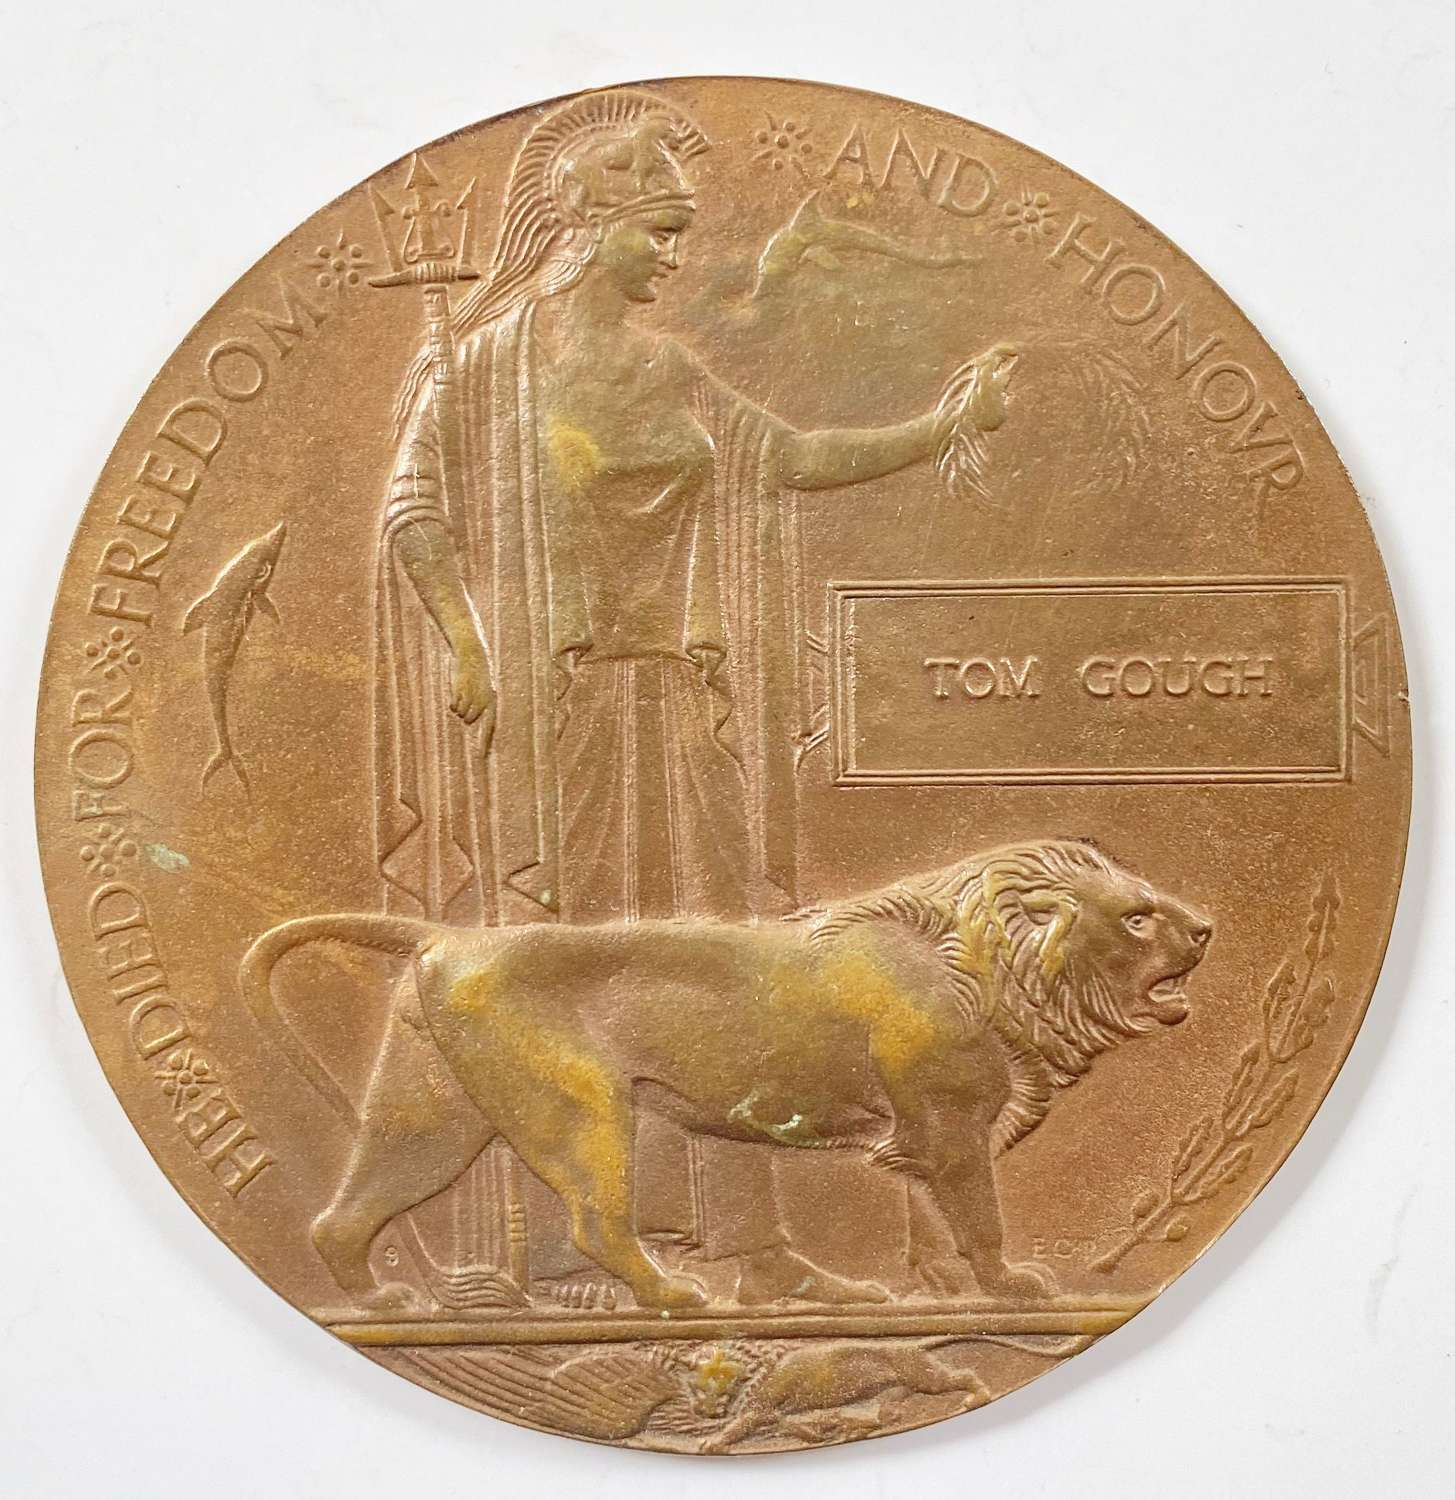 WW1 1917 2nd Bn King's Own Yorkshire Light Infantry Memorial Plaque